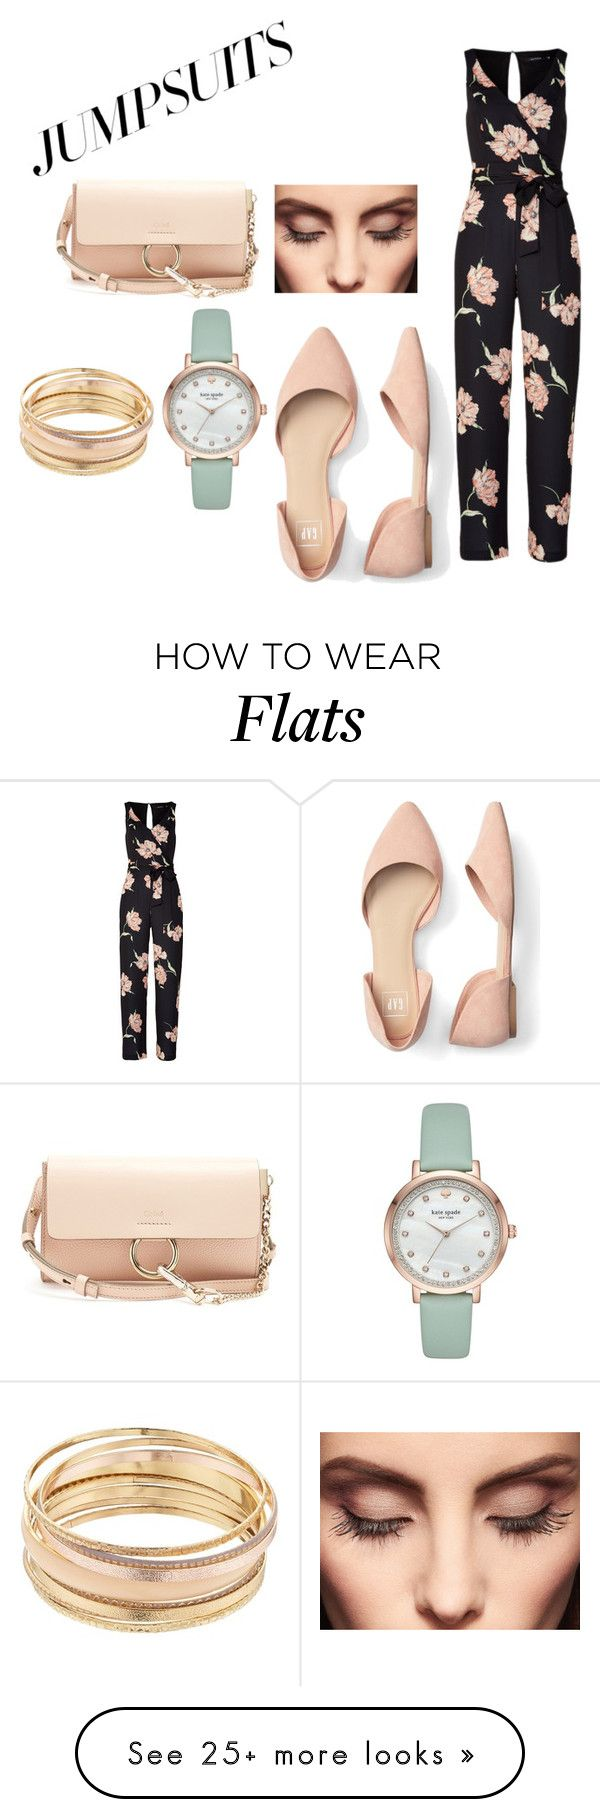 """""""Jumpsuit chic"""" by gracieandem on Polyvore featuring Chloé, Mudd, Kate Spade, Claire Evans and jumpsuits"""